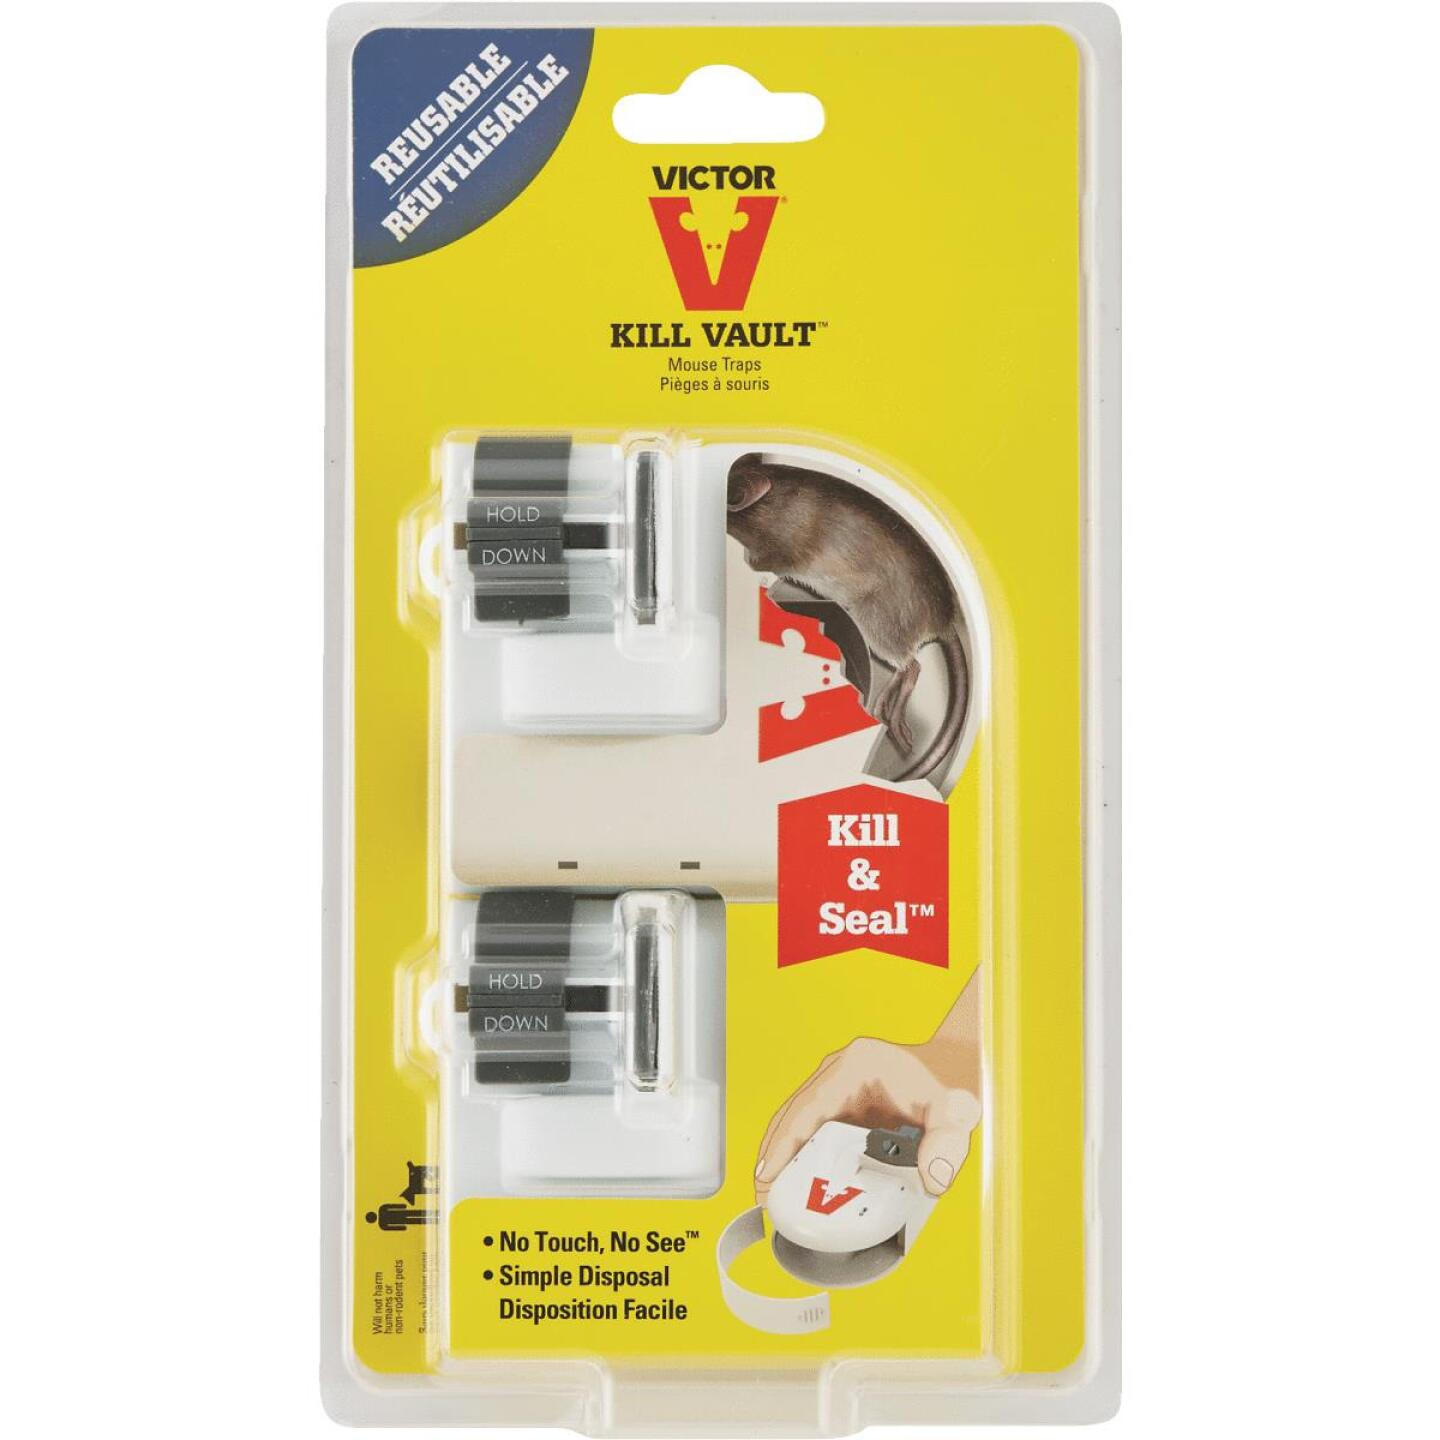 Victor Kill And Seal Mechanical Hygienic Mouse Trap (2-Pack) Image 4